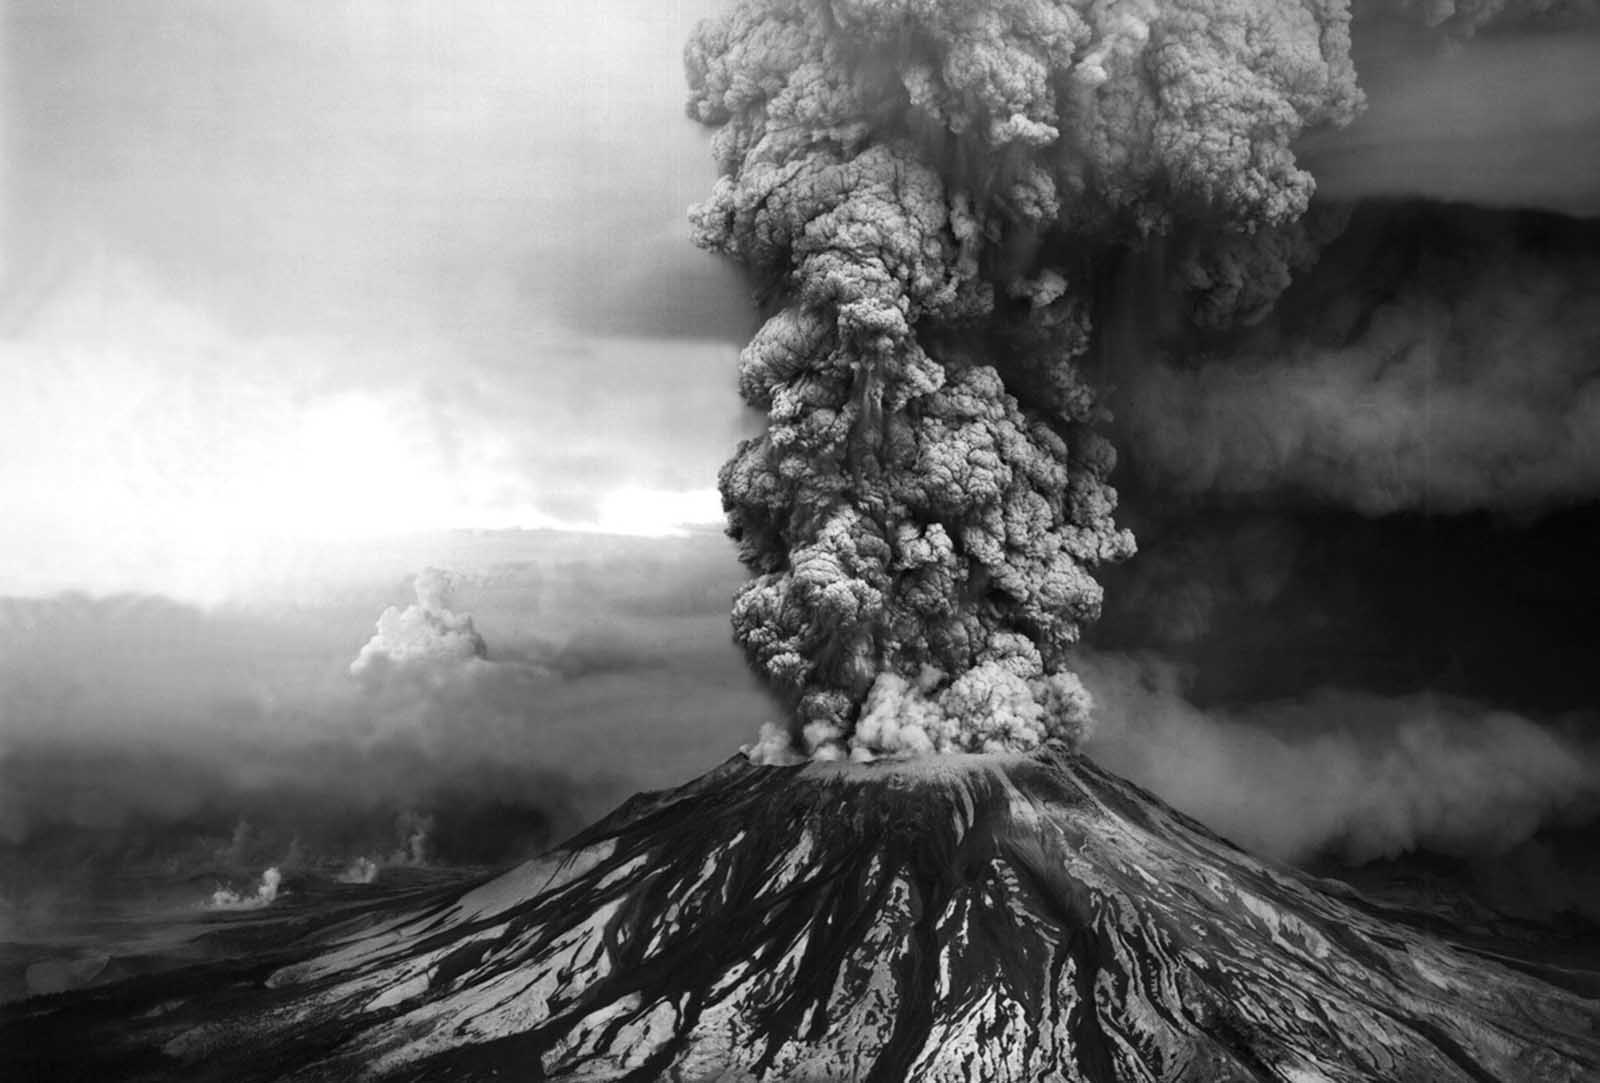 An ash plume billows from the crater atop Mount St. Helens hours after its eruption began on May 18th, 1980, in Washington state. The column of ash and gas reached 15 miles into the atmosphere, depositing ash across a dozen states.